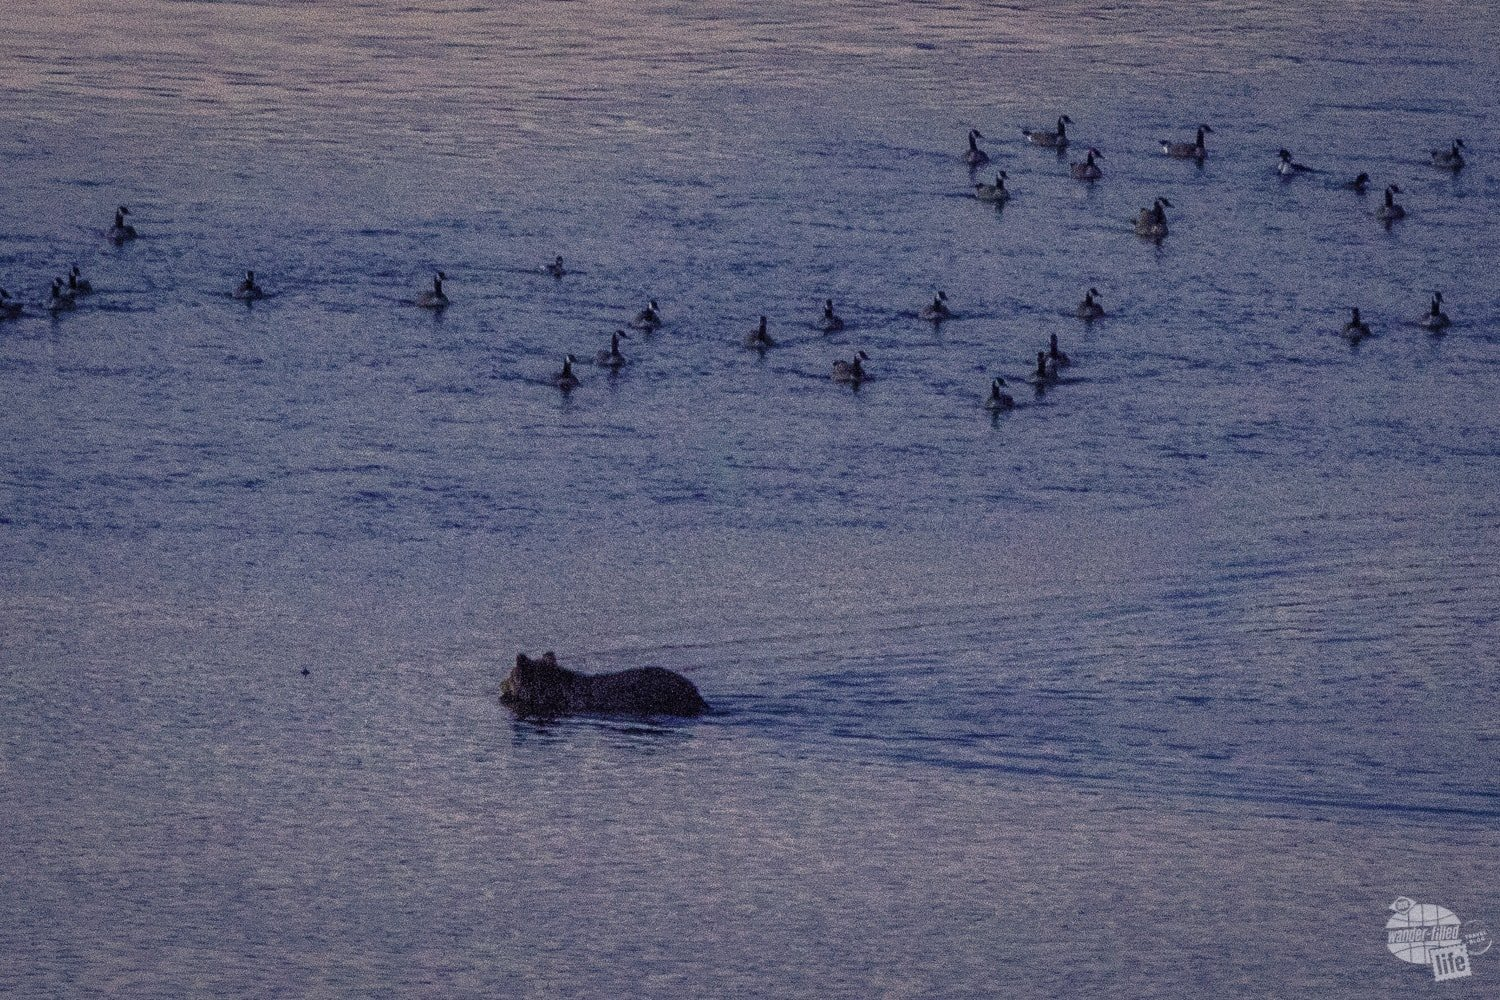 When's the last time you saw a grizzly bear swim a river?